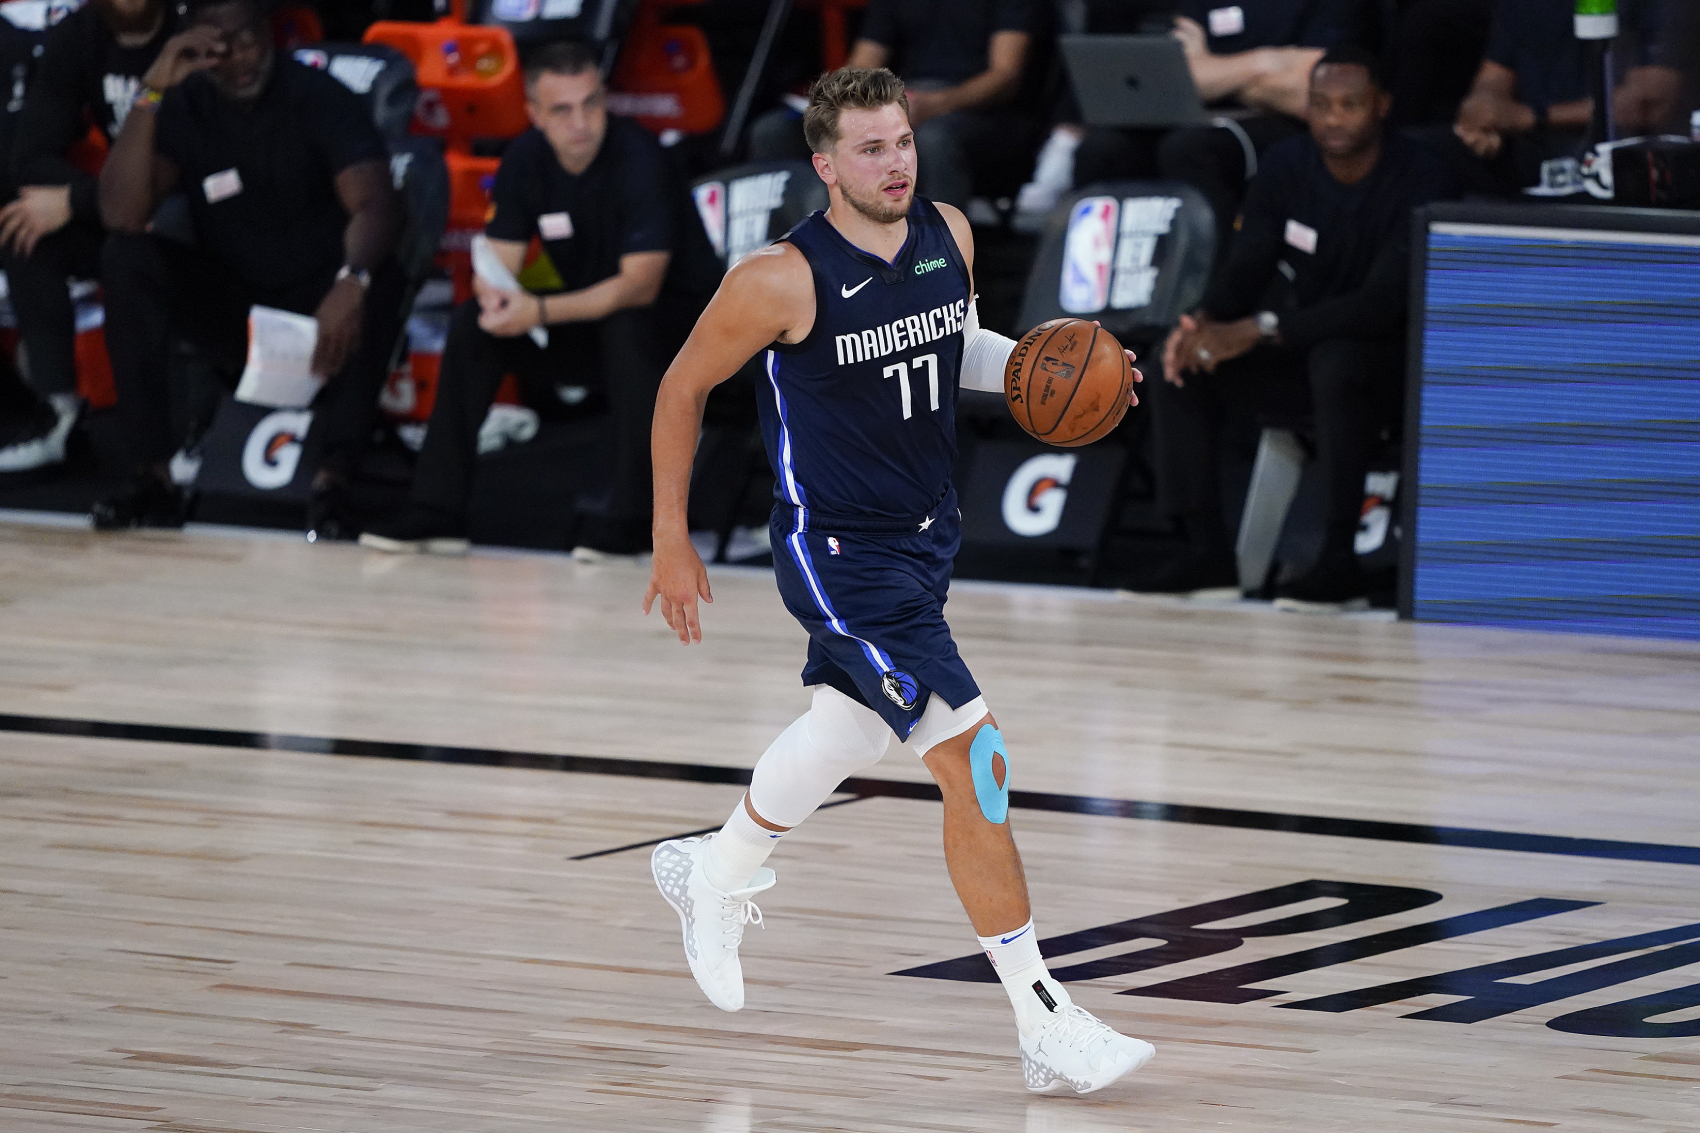 After a great rookie year, Luka Doncic has become a star with the Mavericks. However, he doesn't want to win the Most Improved Player award.